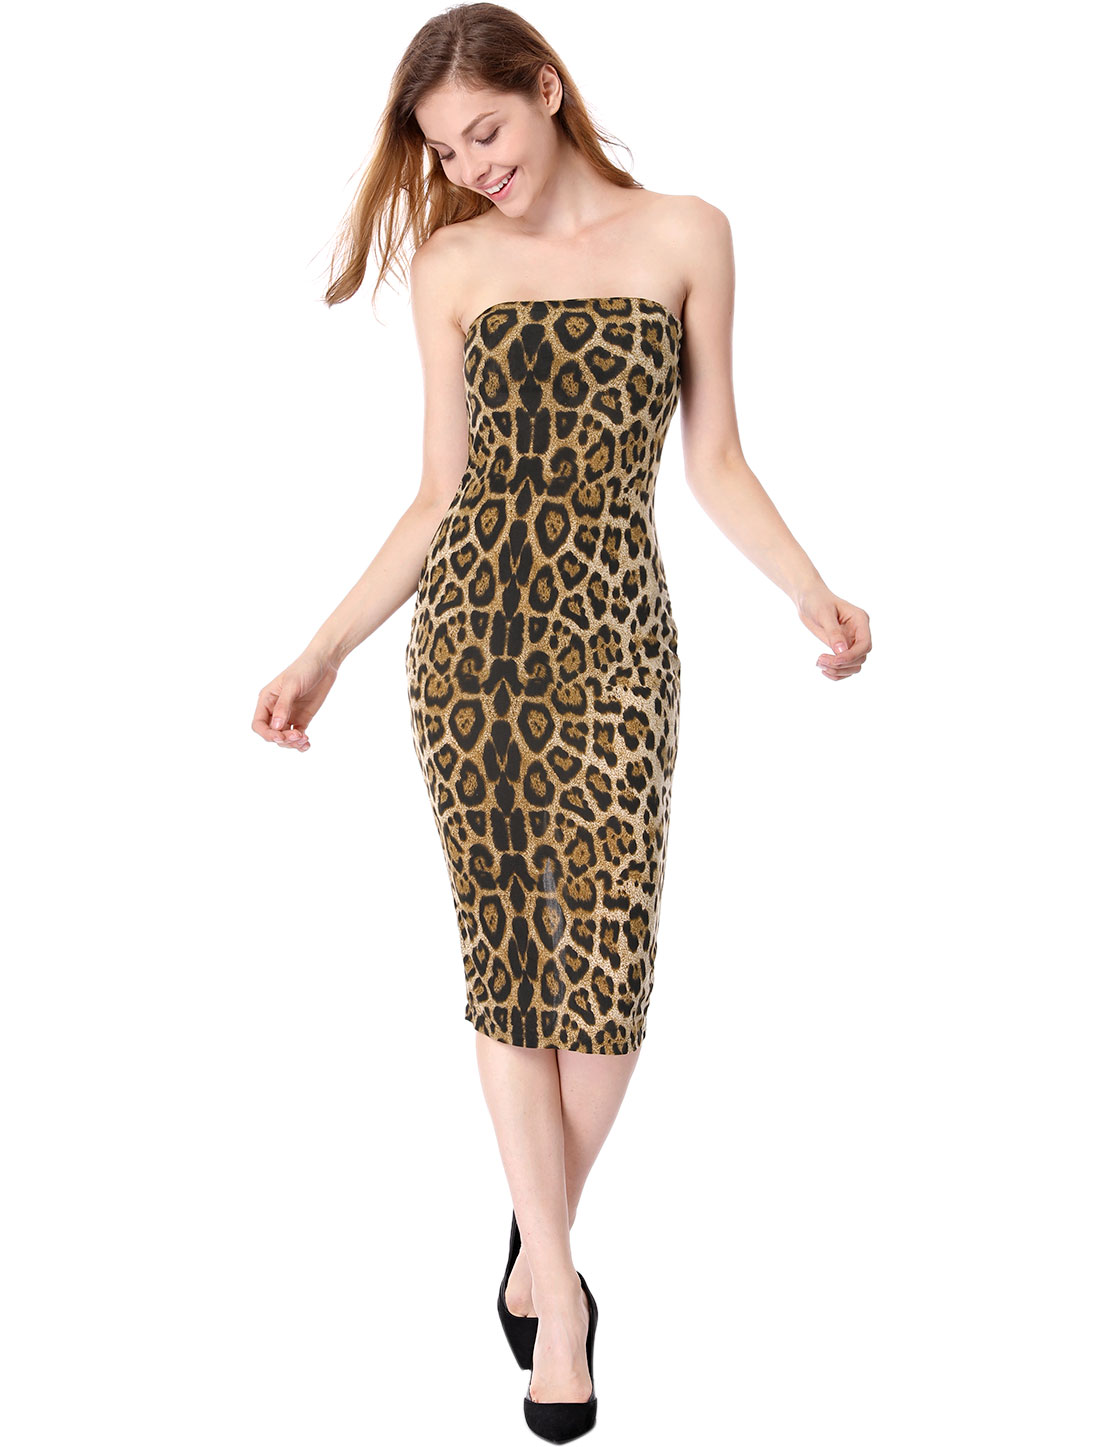 Lady Strapless Design Coffee Color Leopard Pattern Tube Dress XL